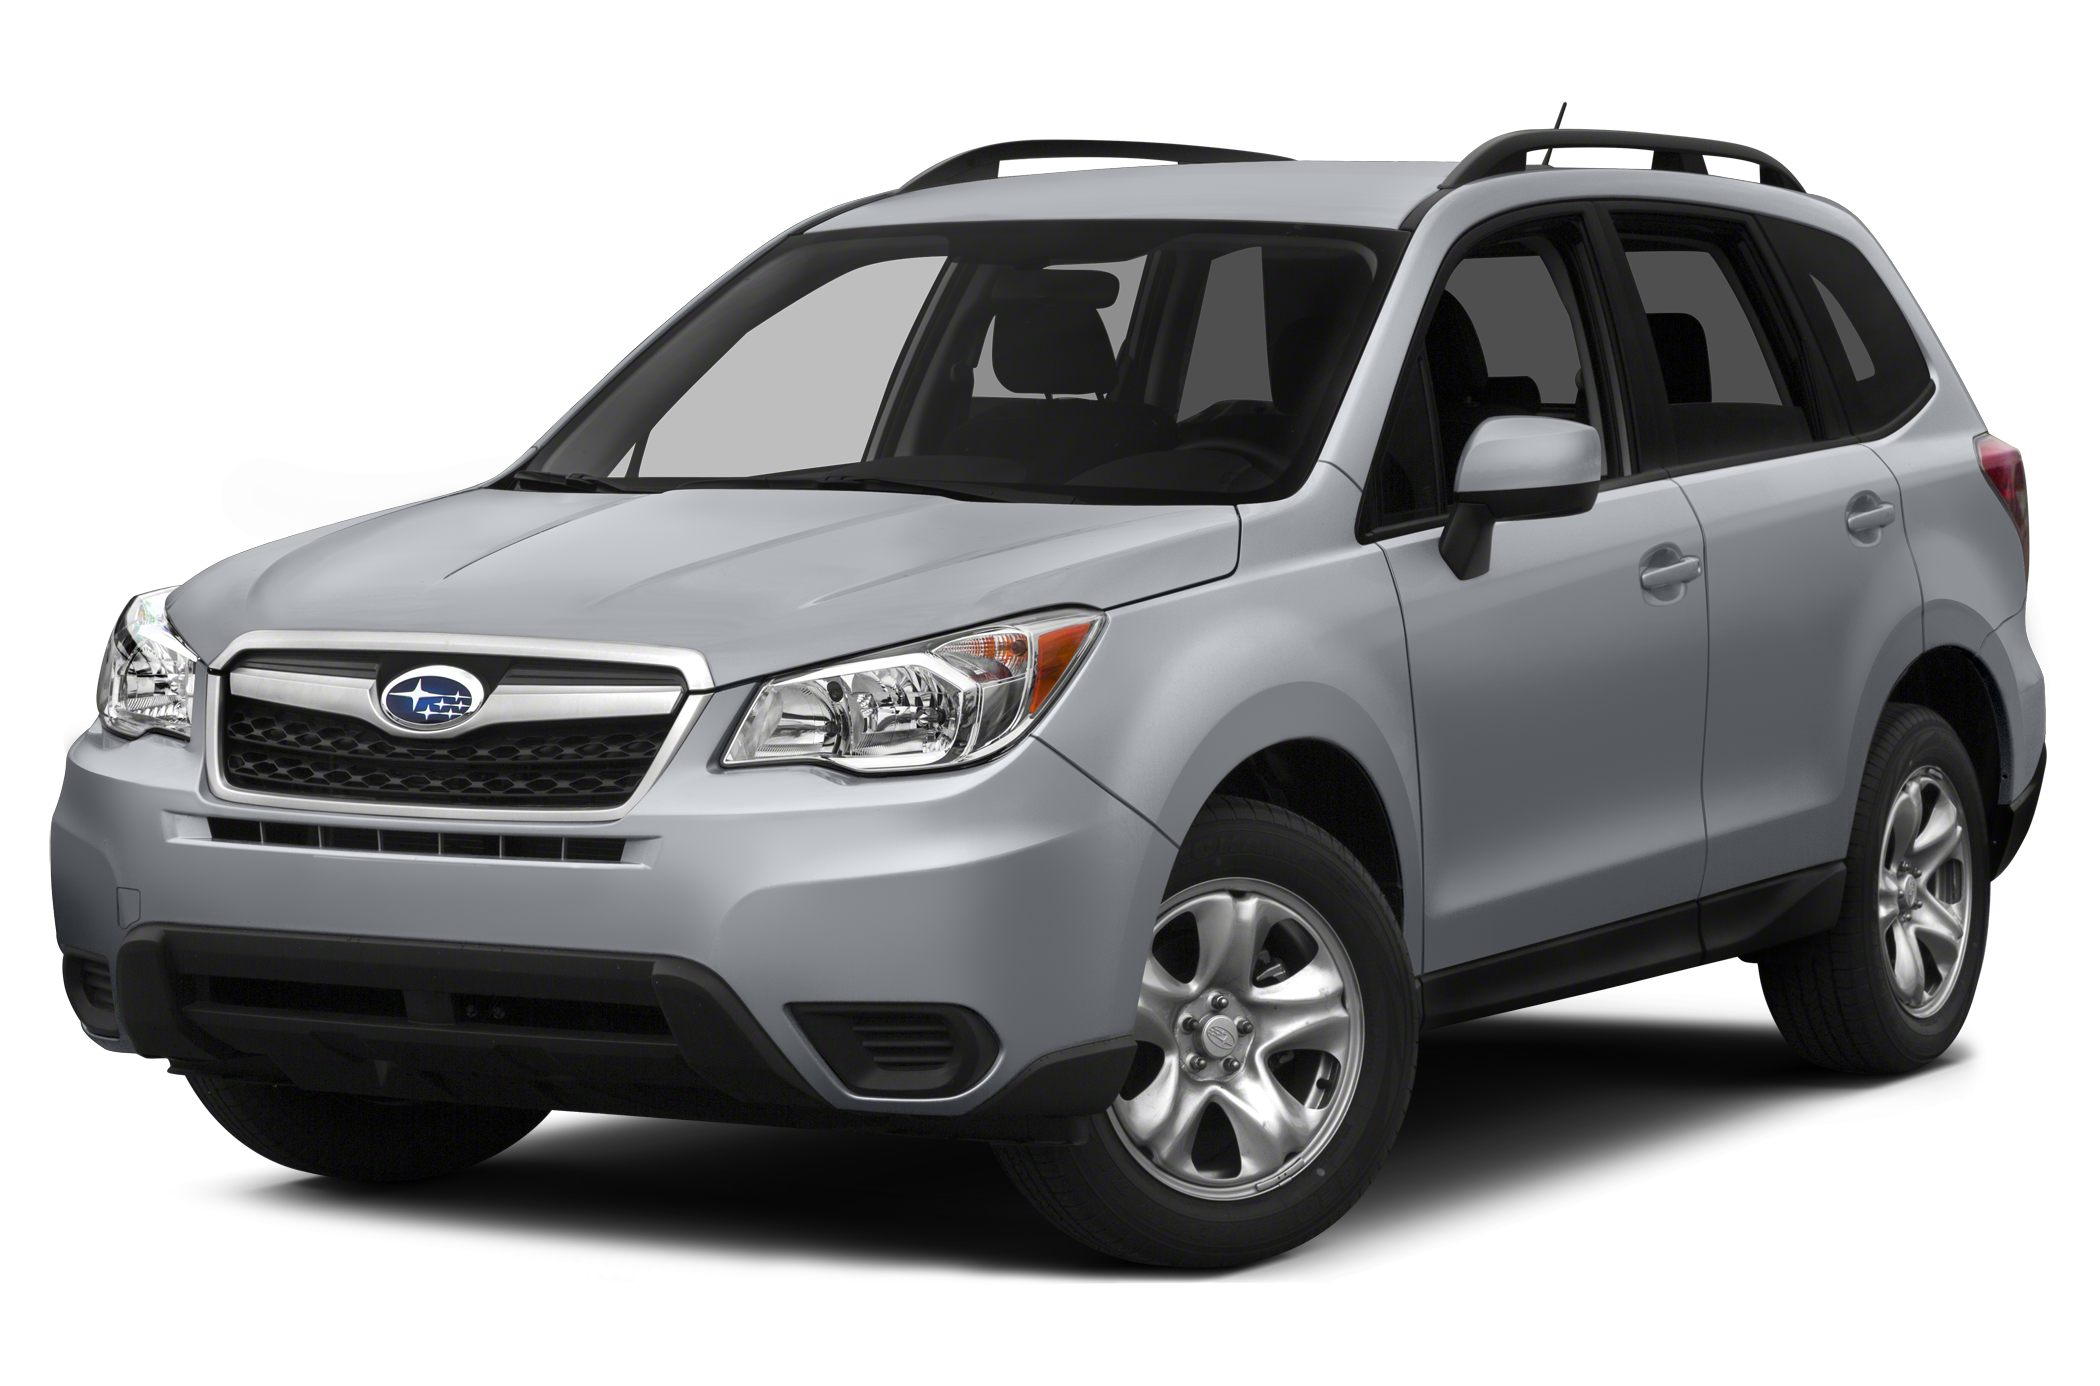 2015 Subaru Forester 2.5i Premium SUV for sale in Pulaski for $24,477 with 23,542 miles.